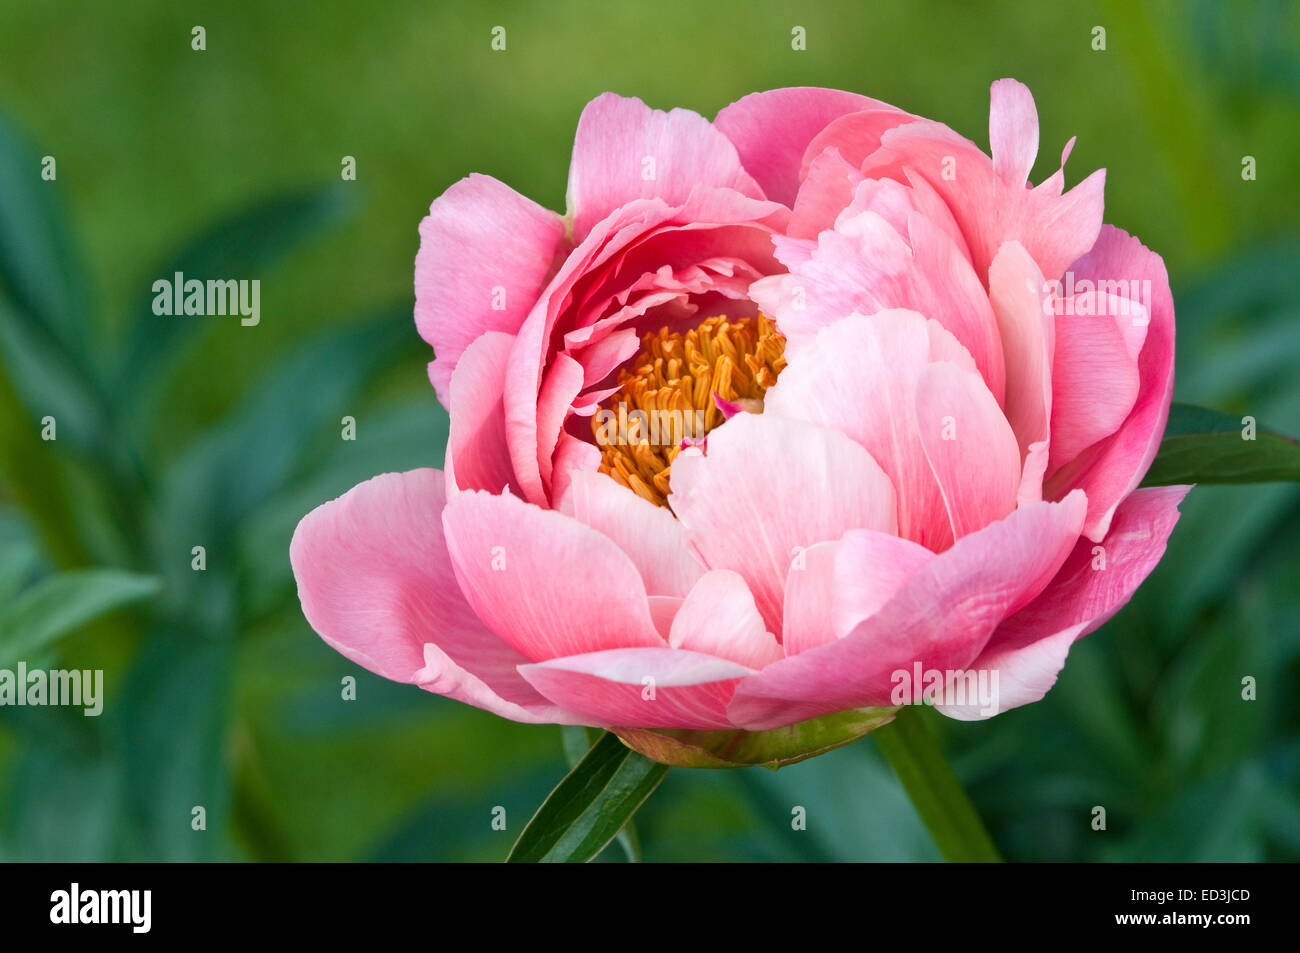 Paeonia lactiflora 'Coral Charm' - Stock Image